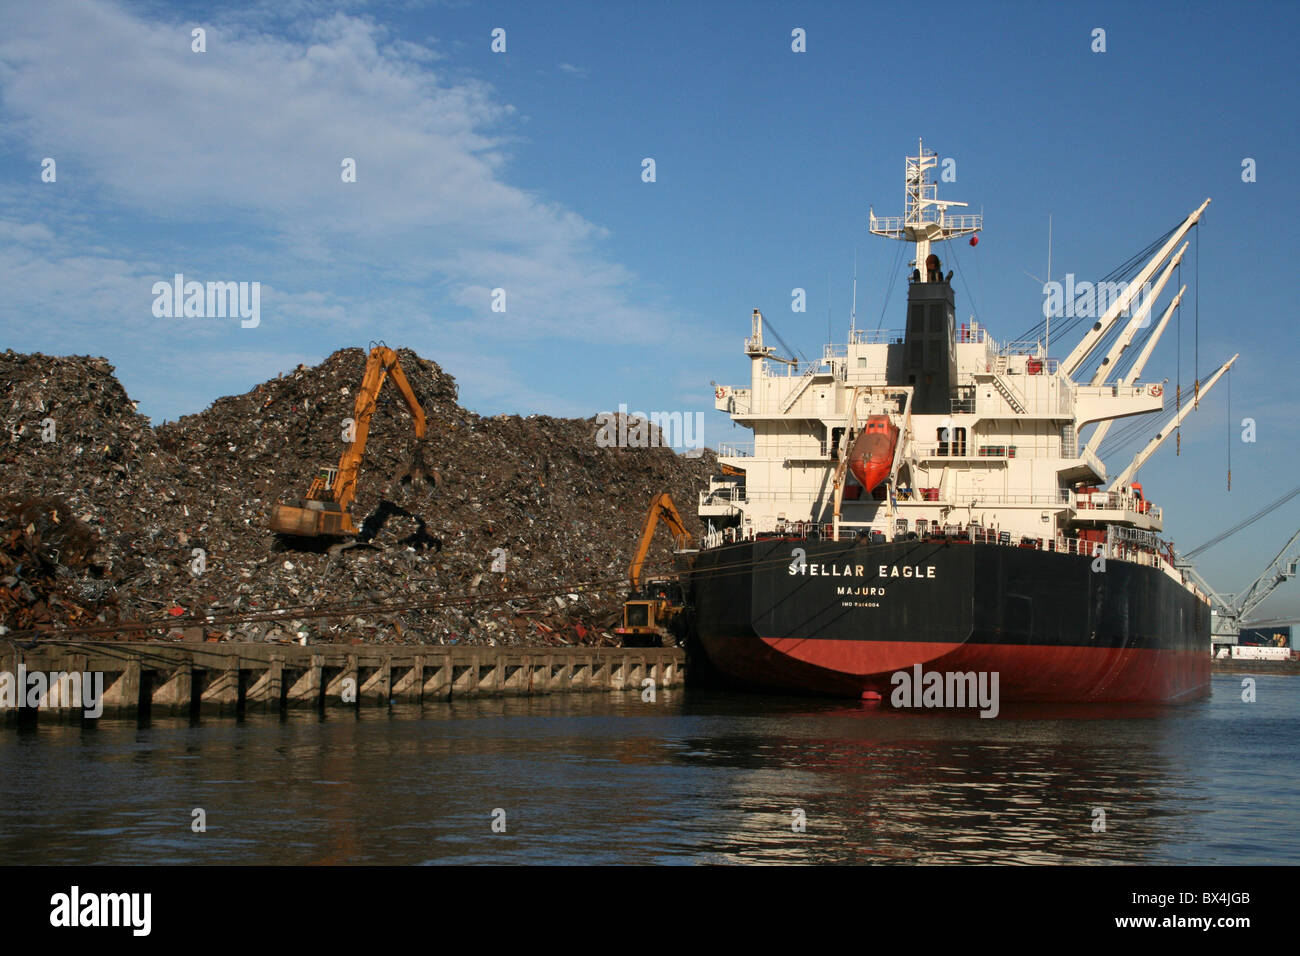 The Cargo Ship 'Stellar Eagle' Being Loaded With Scarp Metal At Liverpool Docks, UK - Stock Image